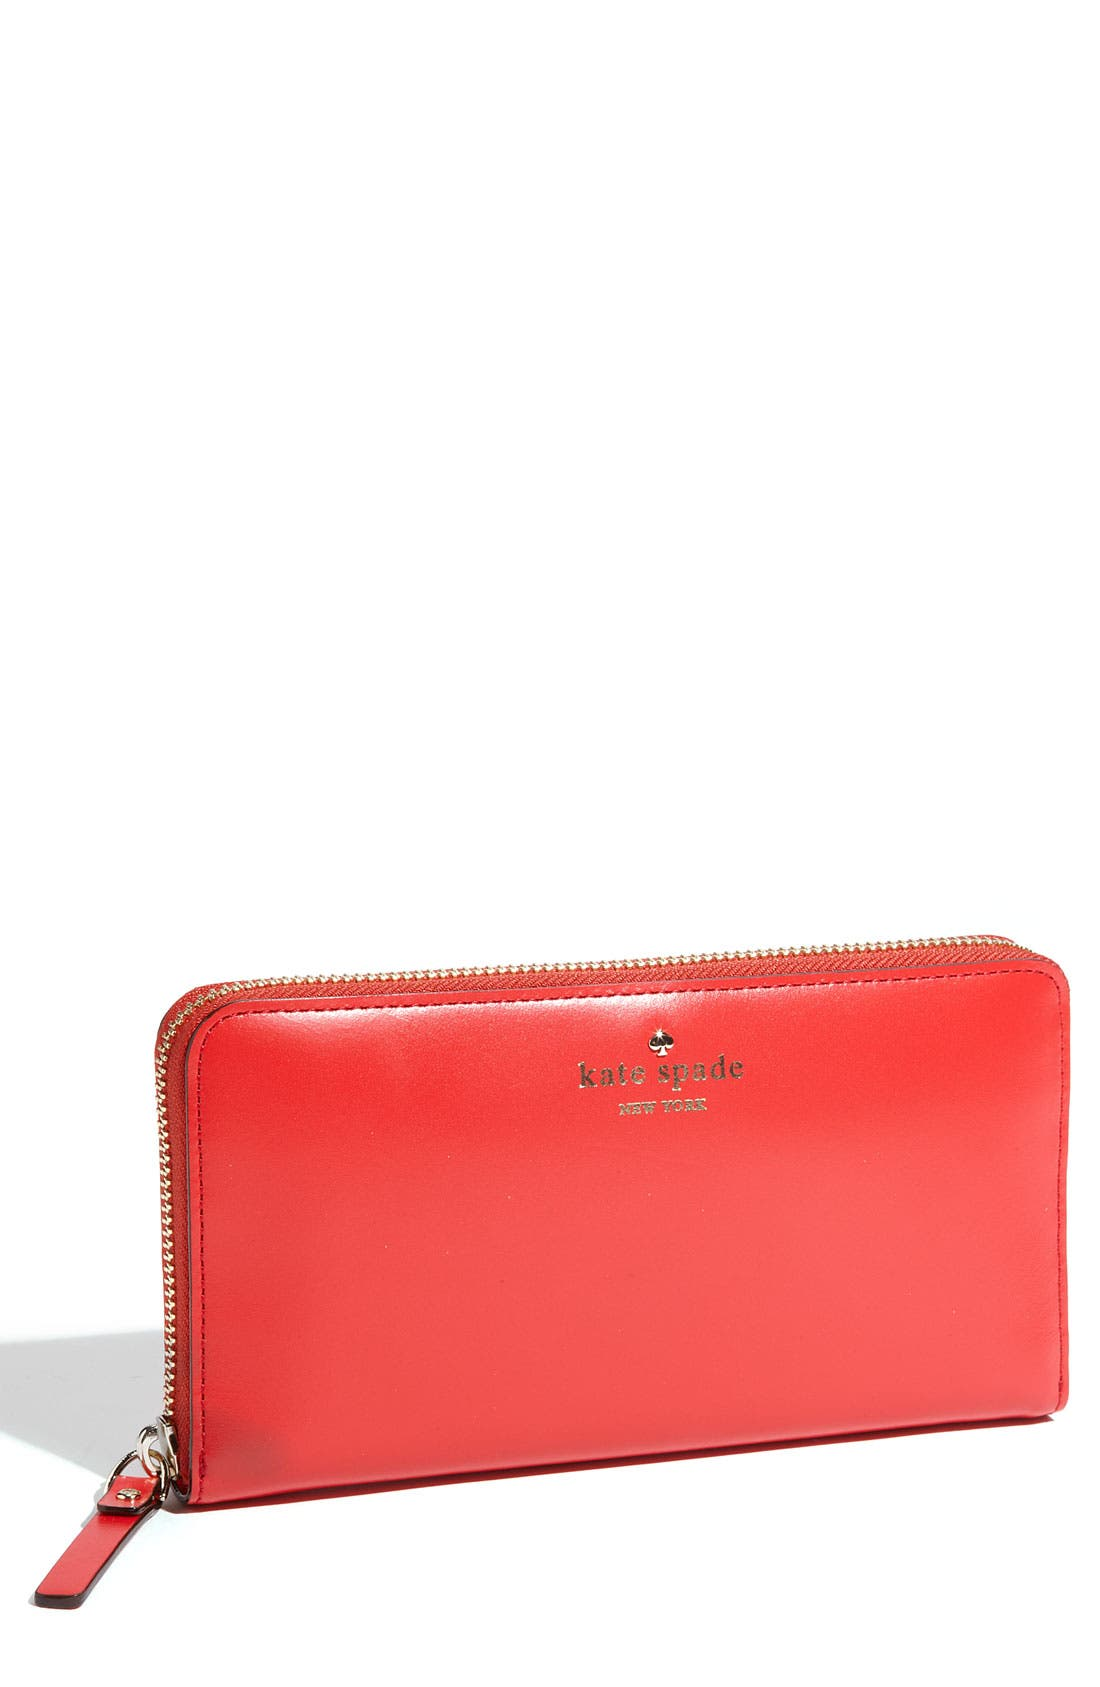 Main Image - kate spade new york 'tudor city - lacey' zip around wallet